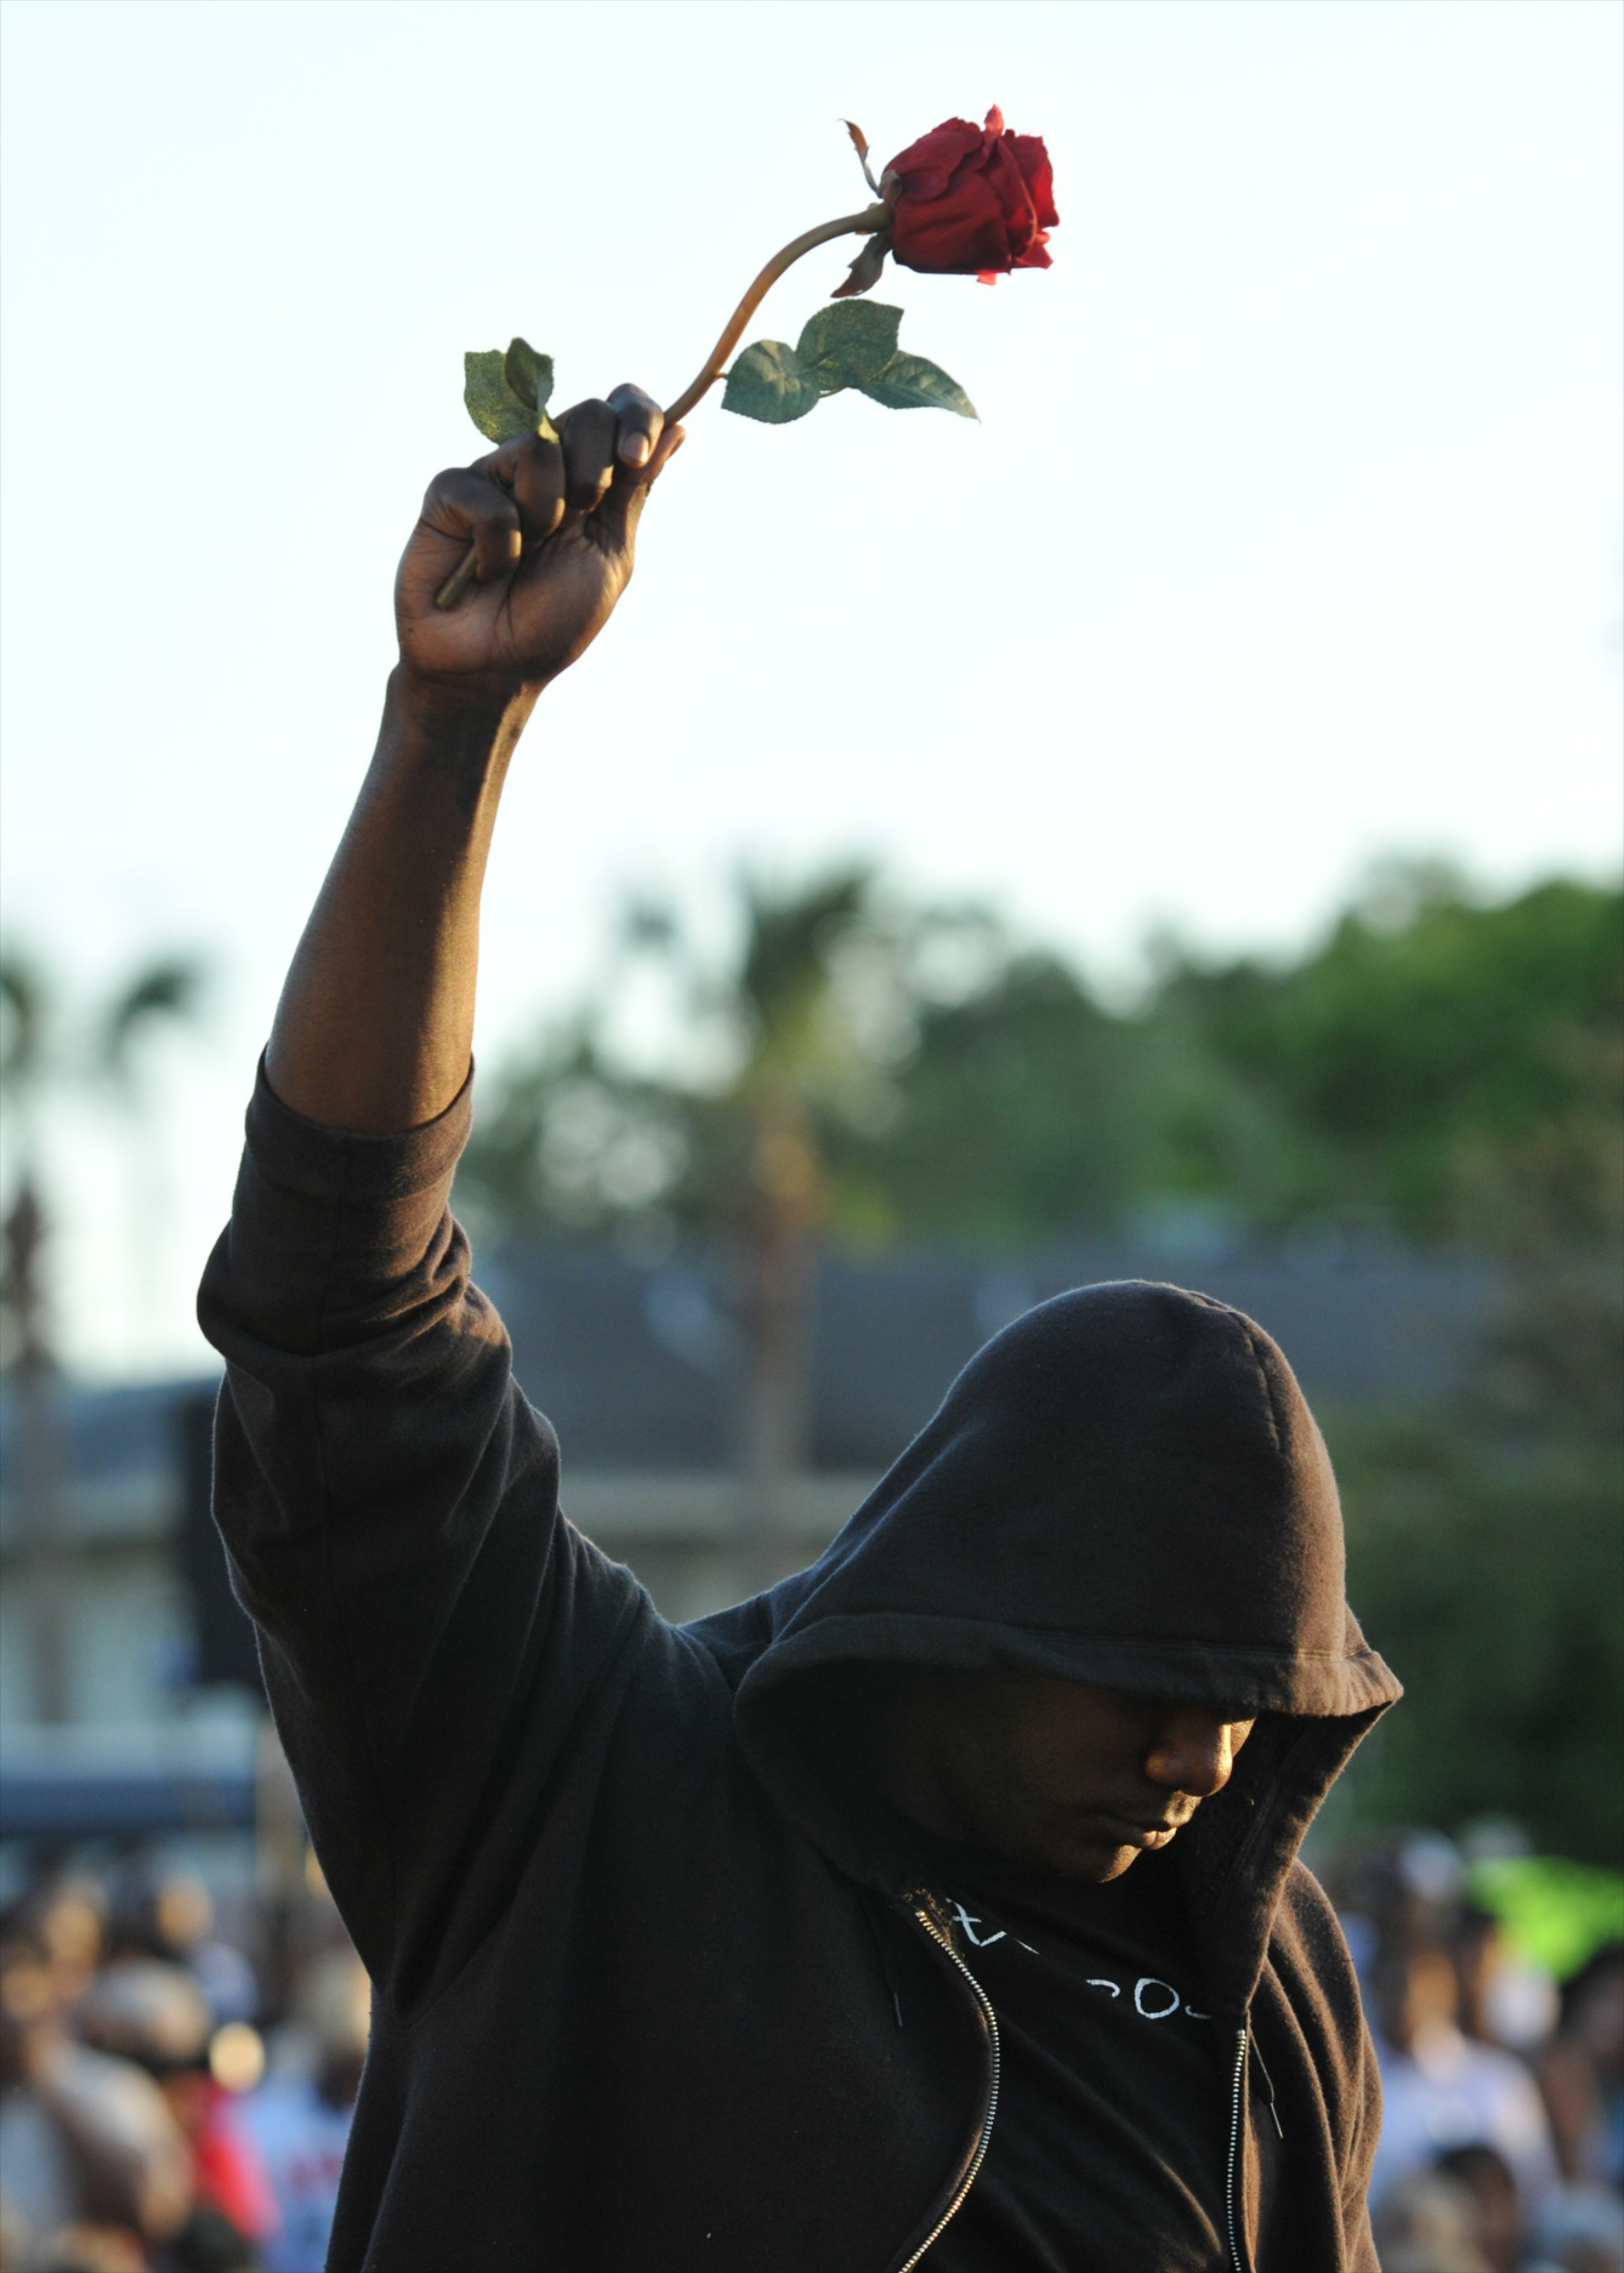 FILE - In this March 22, 2012 file photo James Gilchrist of Orlando, Fla., wearing a hoodie and holding a rose, attends a rally for Trayvon Martin in Sanford, Fla. Martin was shot by George Zimmerman, who claimed self-defense, as he patrolled a gated community in Florida. Though he was not a sworn police officer, his case raised some of the same questions in the wake of the killing of 18-year old Michael Brown in Missouri about the role race might pay in the killings of young black men by people in positions of authority. (AP Photo/Roberto Gonzalez, File)